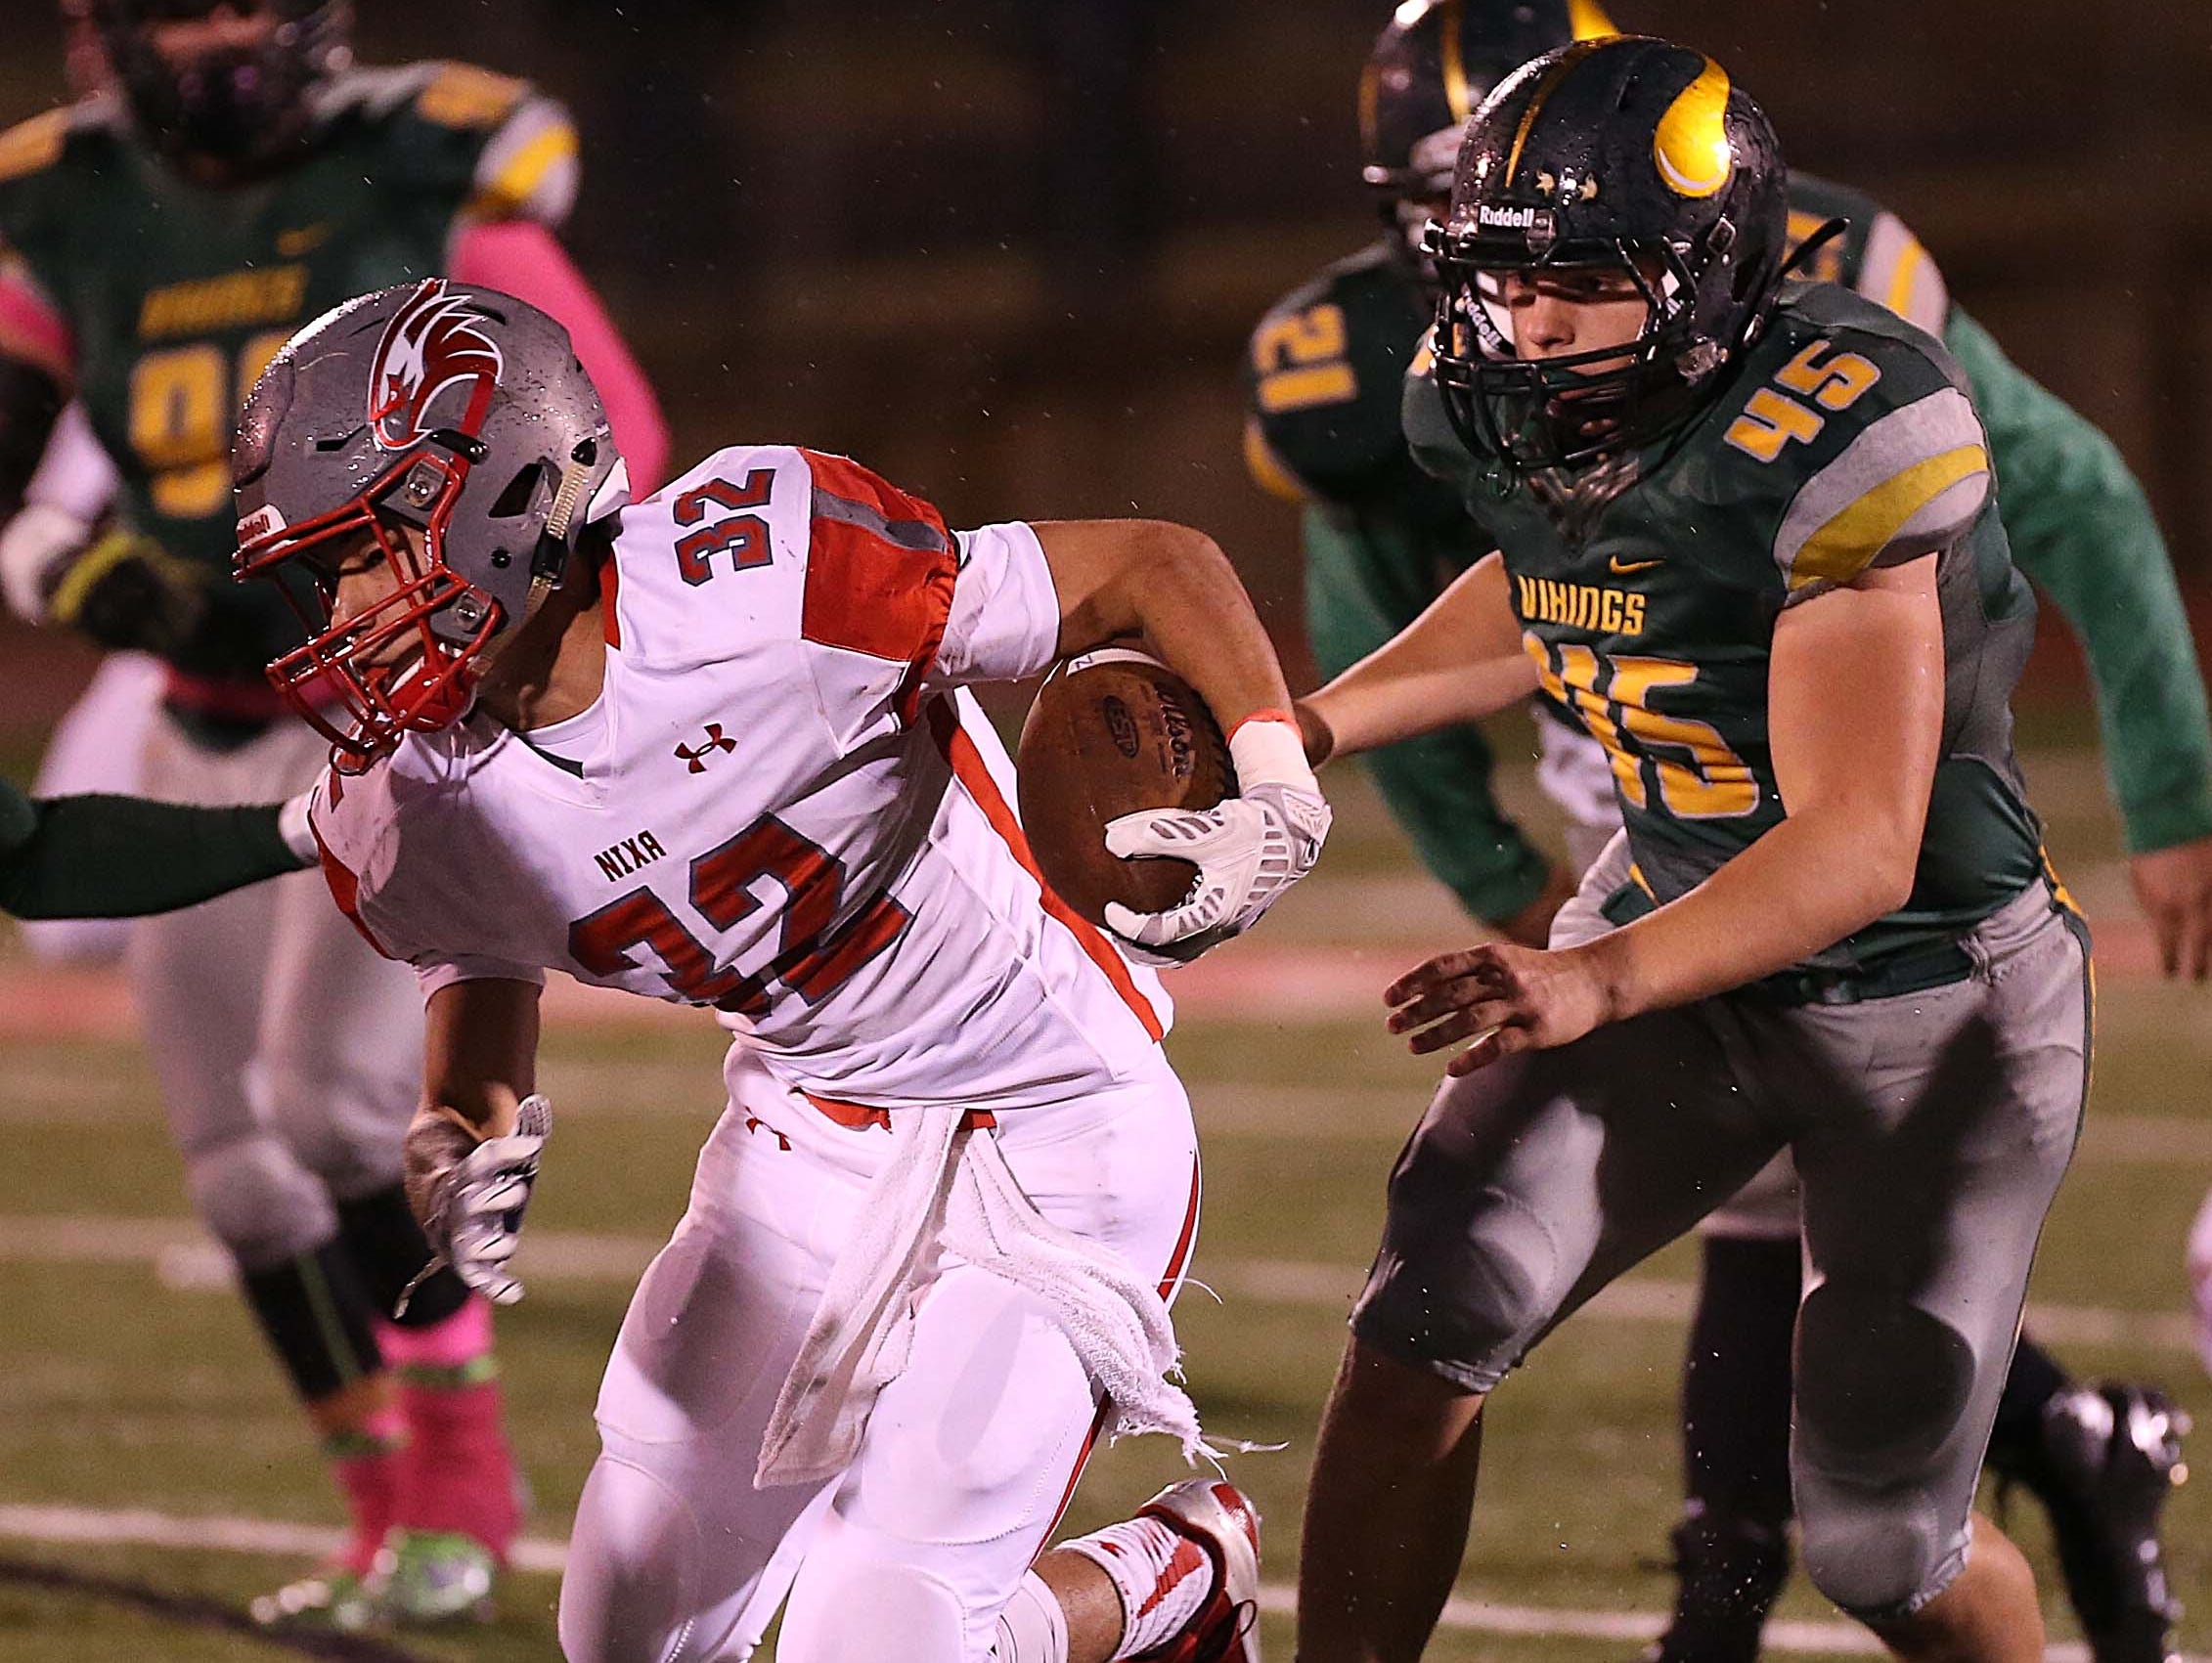 Nixa's Nicos Oropeza advances the ball during his team's visit to Parkview on October 30, 2015.